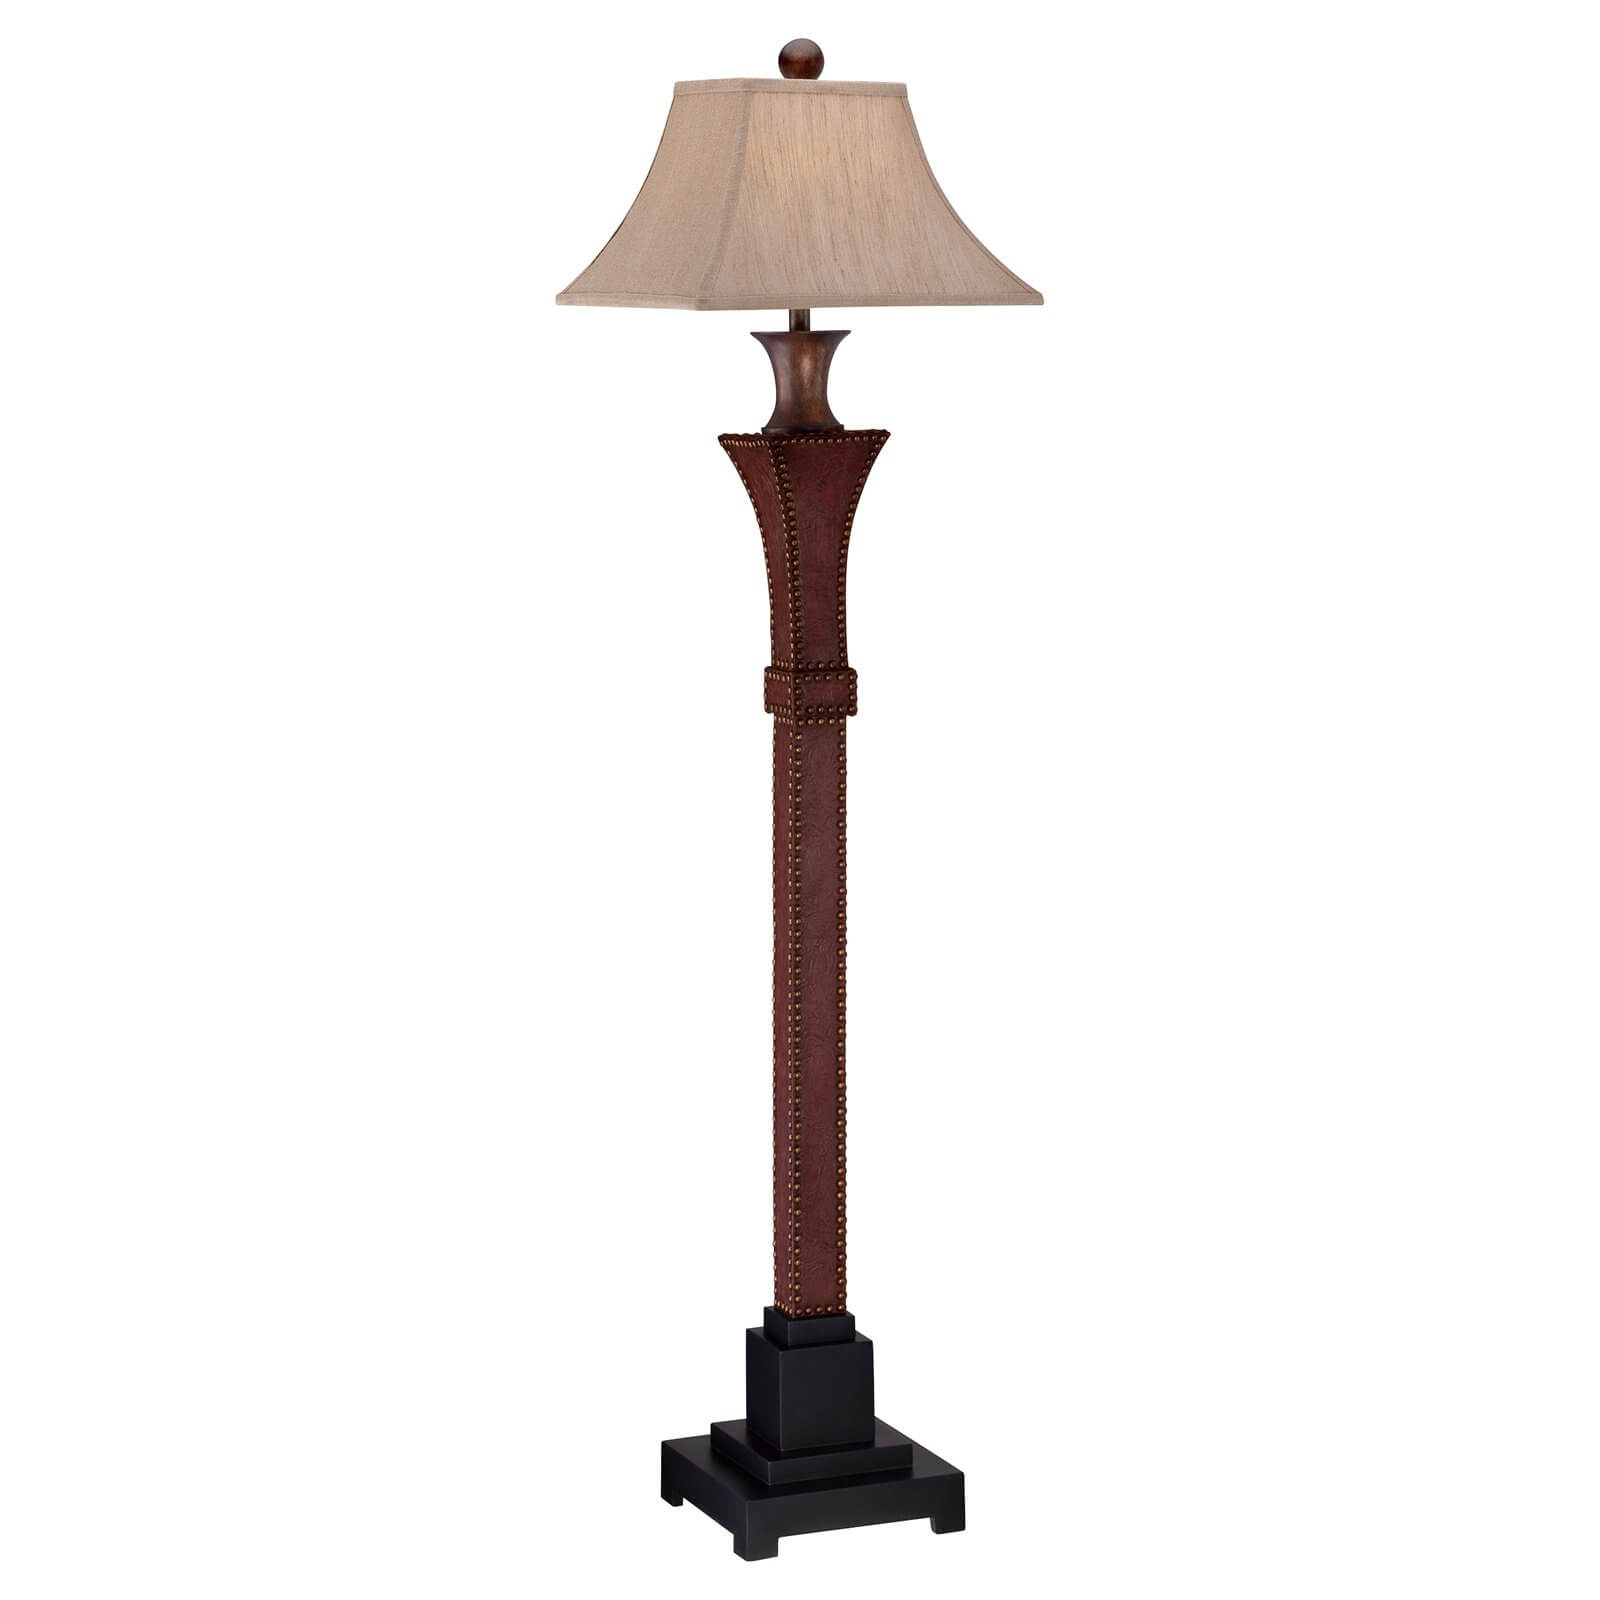 Our first example of a standard design floor lamp is this leather-wrapped wooden model.